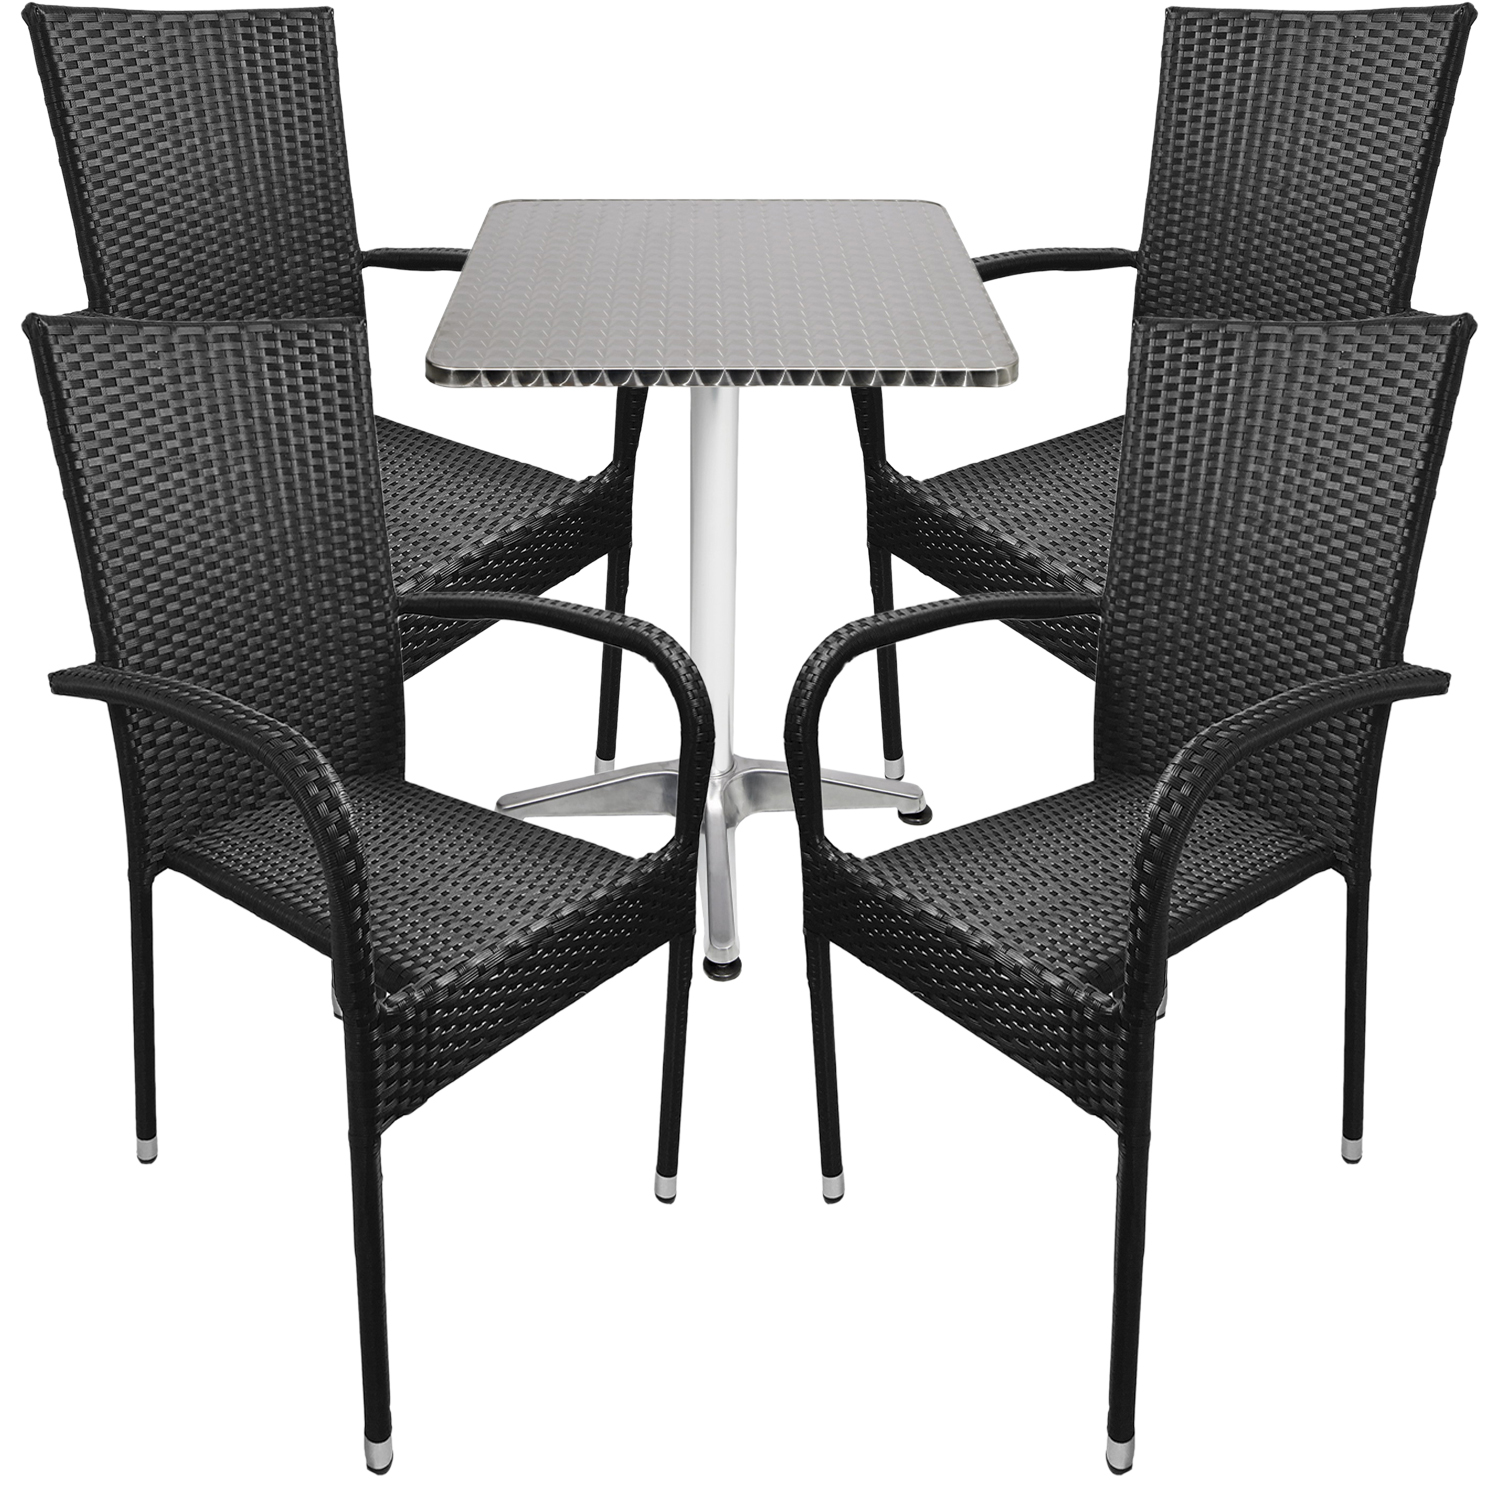 bistro sitzgarnitur bistrogarnitur 5 teilig rattan schwarz garten gartengarnituren. Black Bedroom Furniture Sets. Home Design Ideas